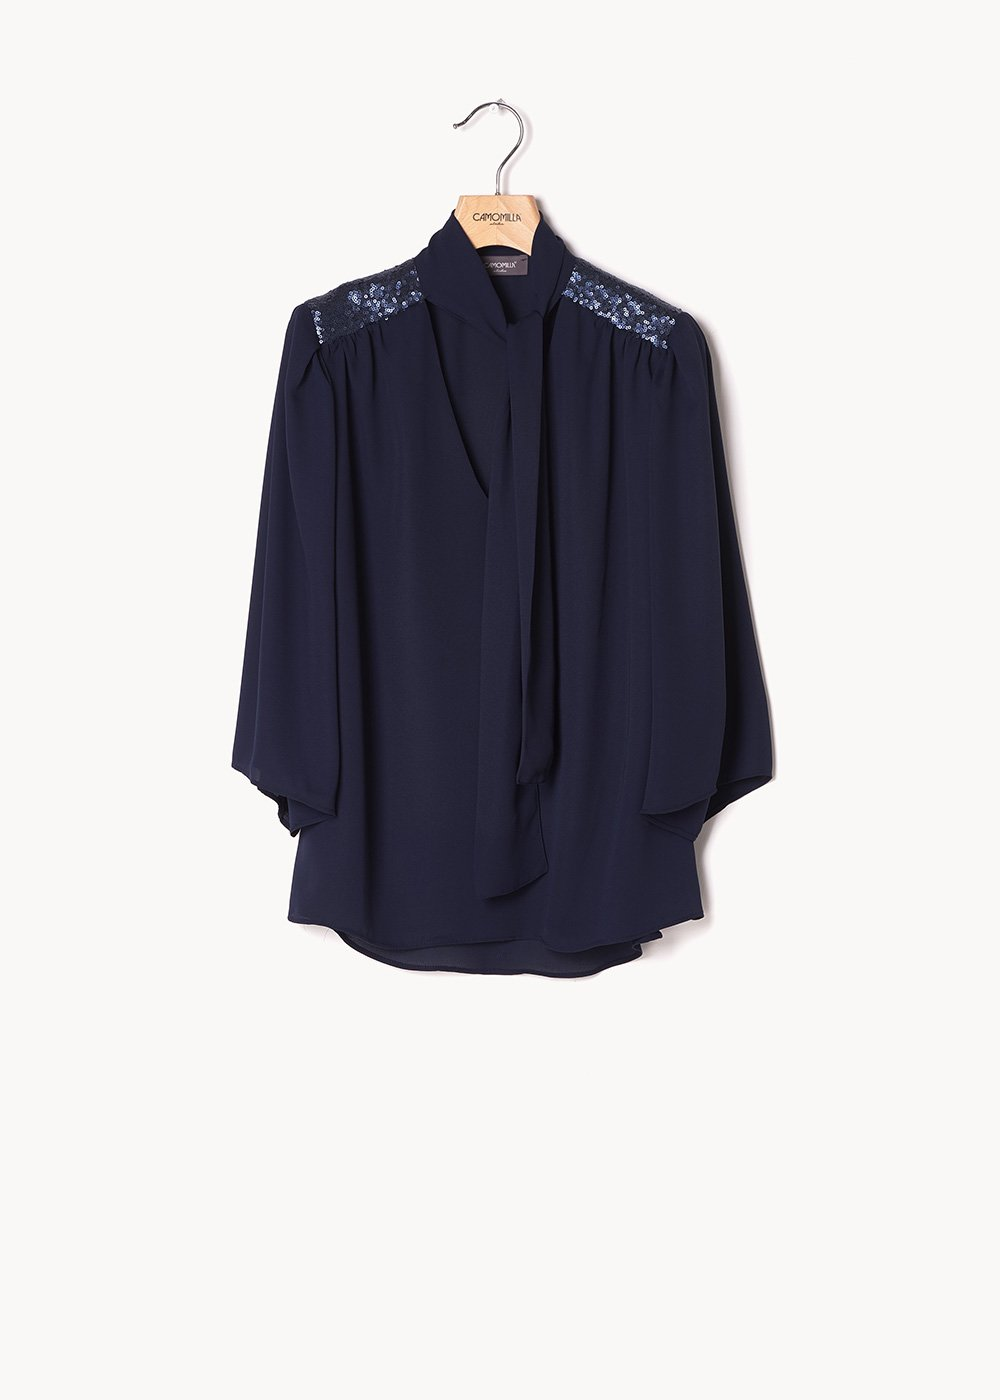 Christina blouse with sequins inserts